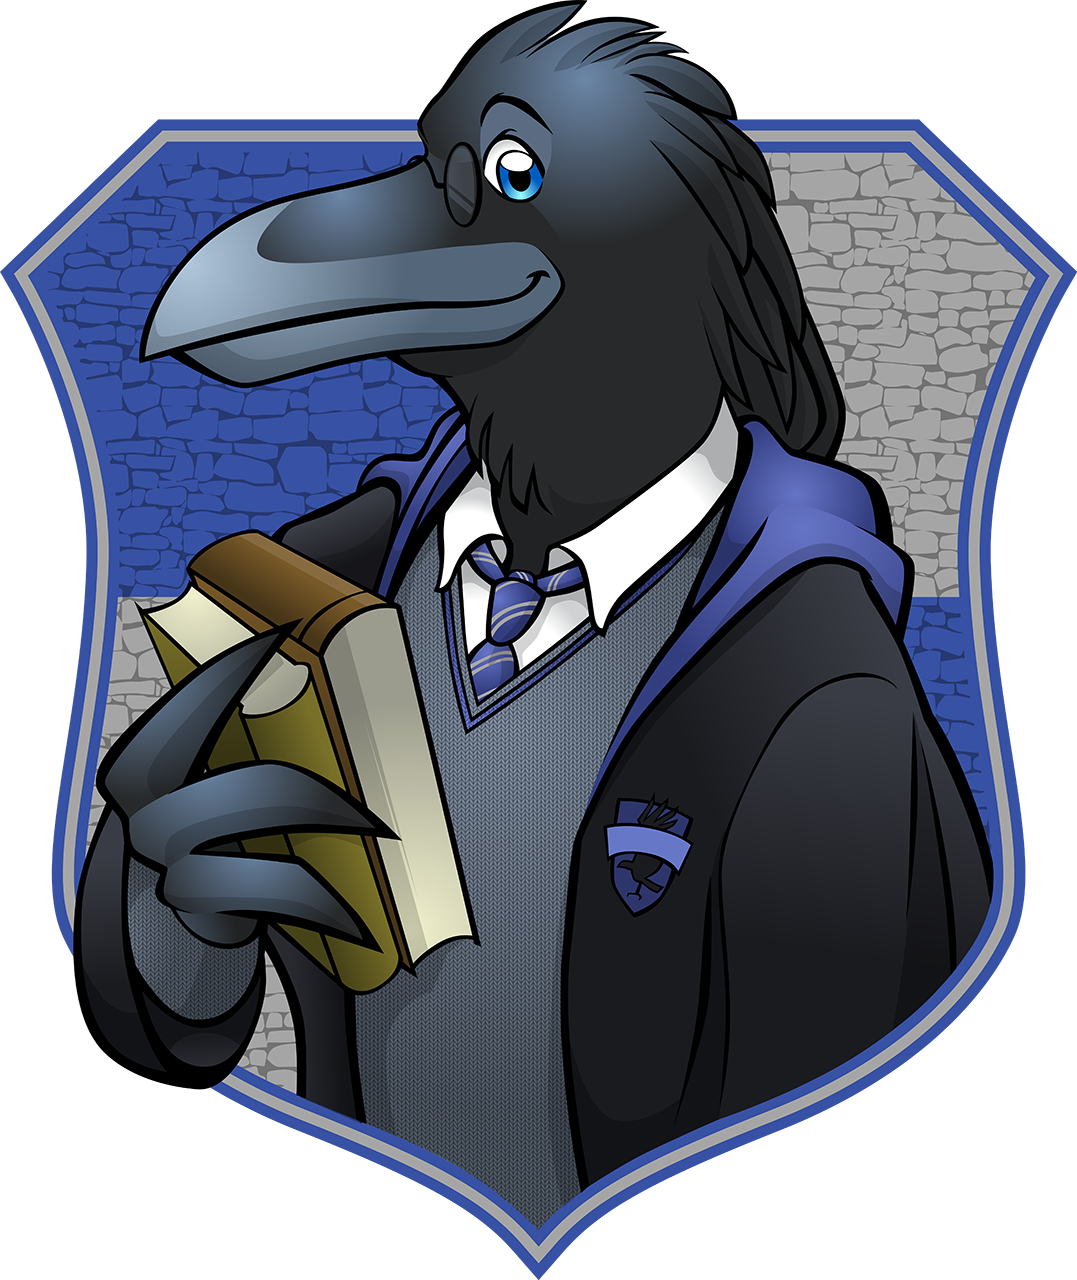 Hogwarts housefurs movie version. Eagles clipart ravenclaw